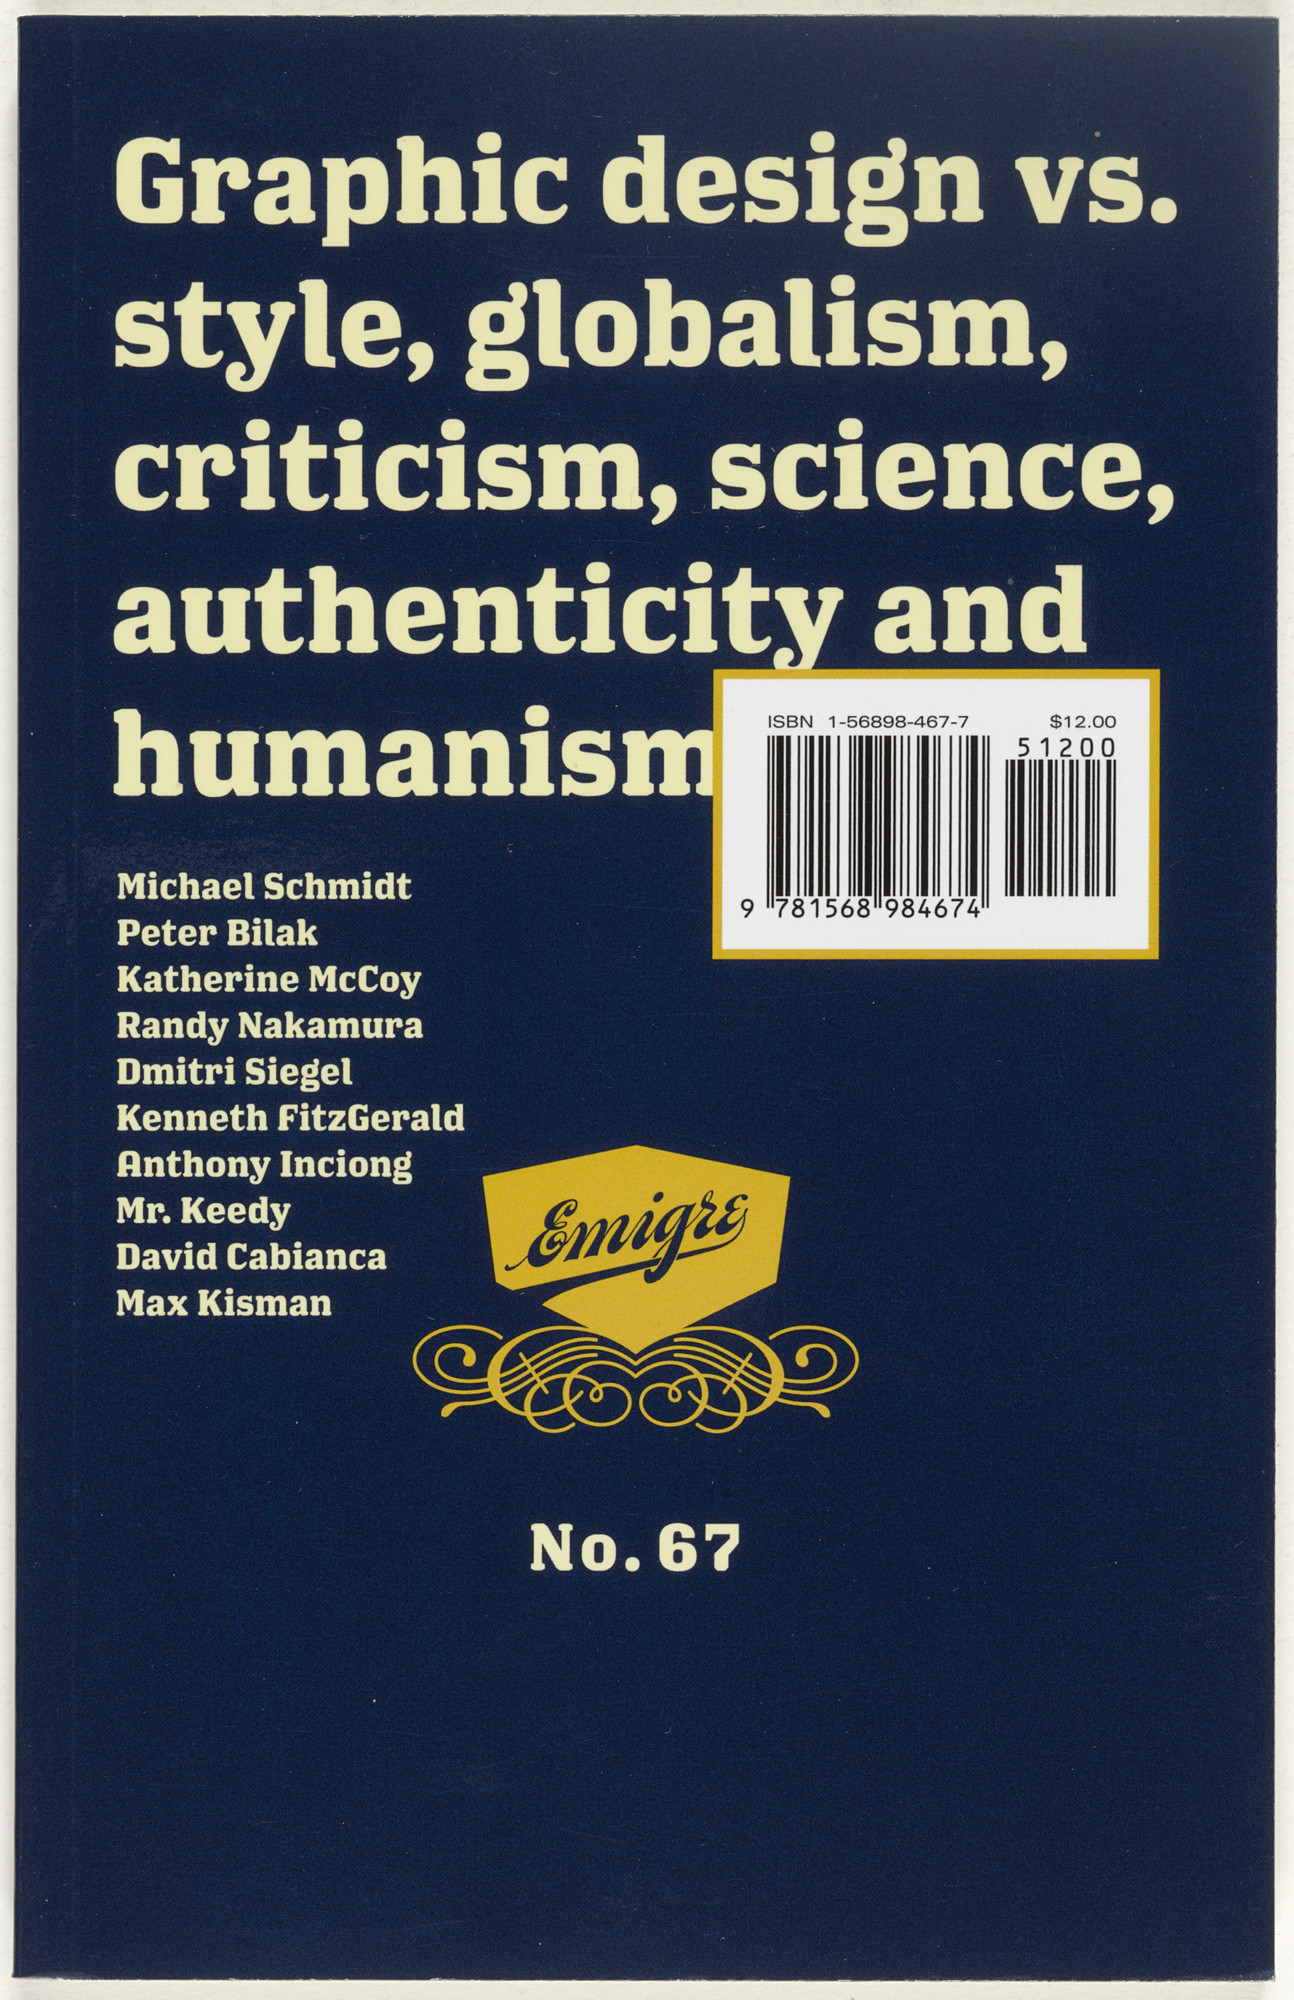 Emigre Inc., Rudy VanderLans, Zuzana Licko. Emigre 67, Graphic design vs. style, globalism, criticism, science, authenticity, and humanism. 2004